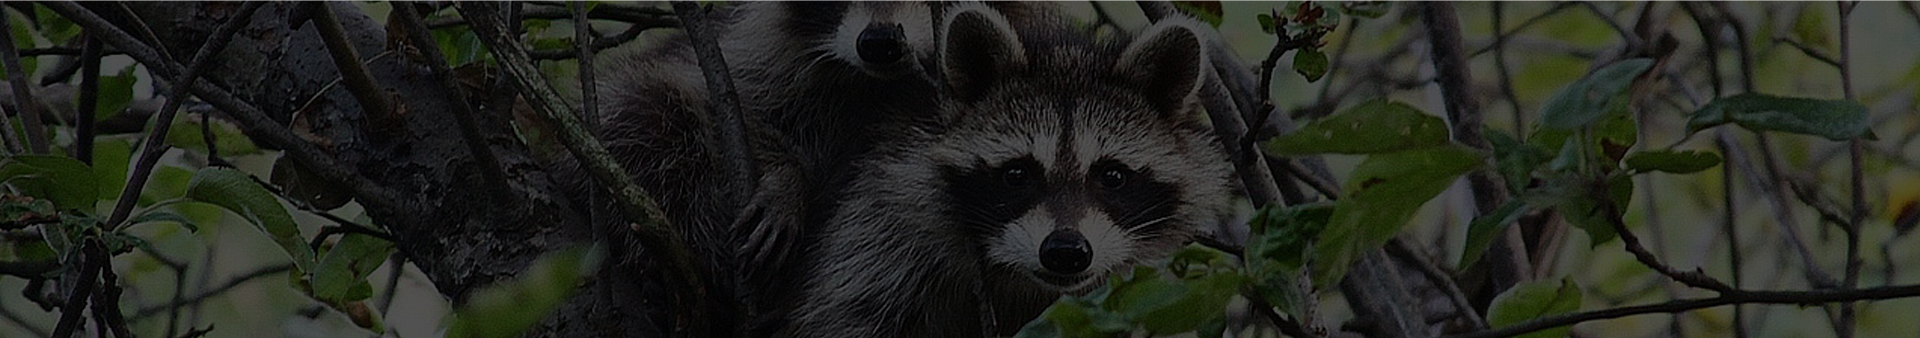 raccoon removal los angeles